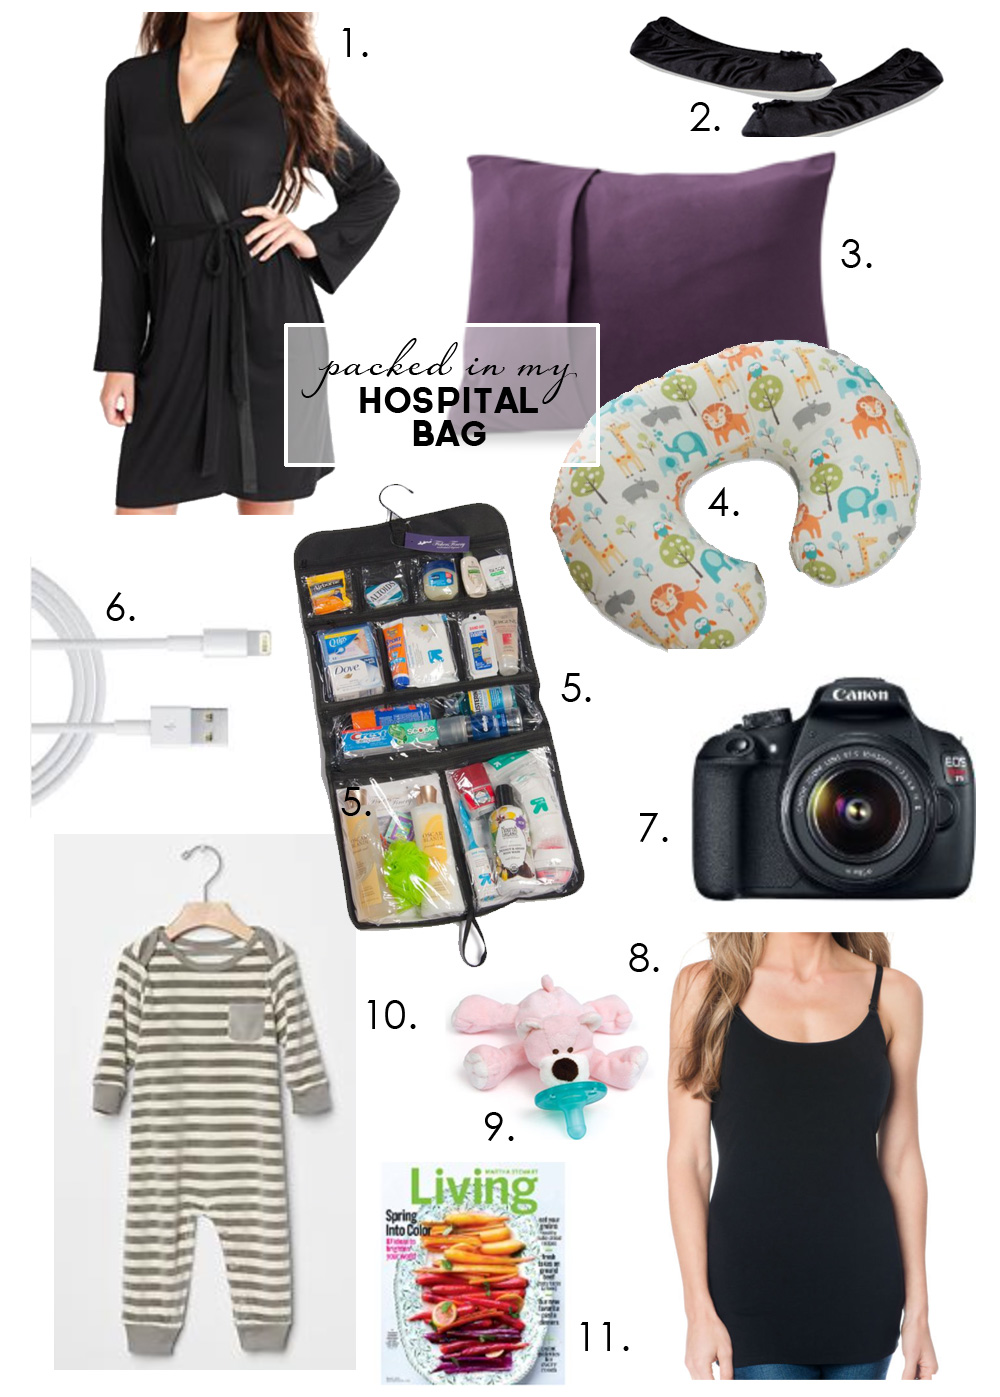 My Hospital Bag | PepperDesignBlog.com